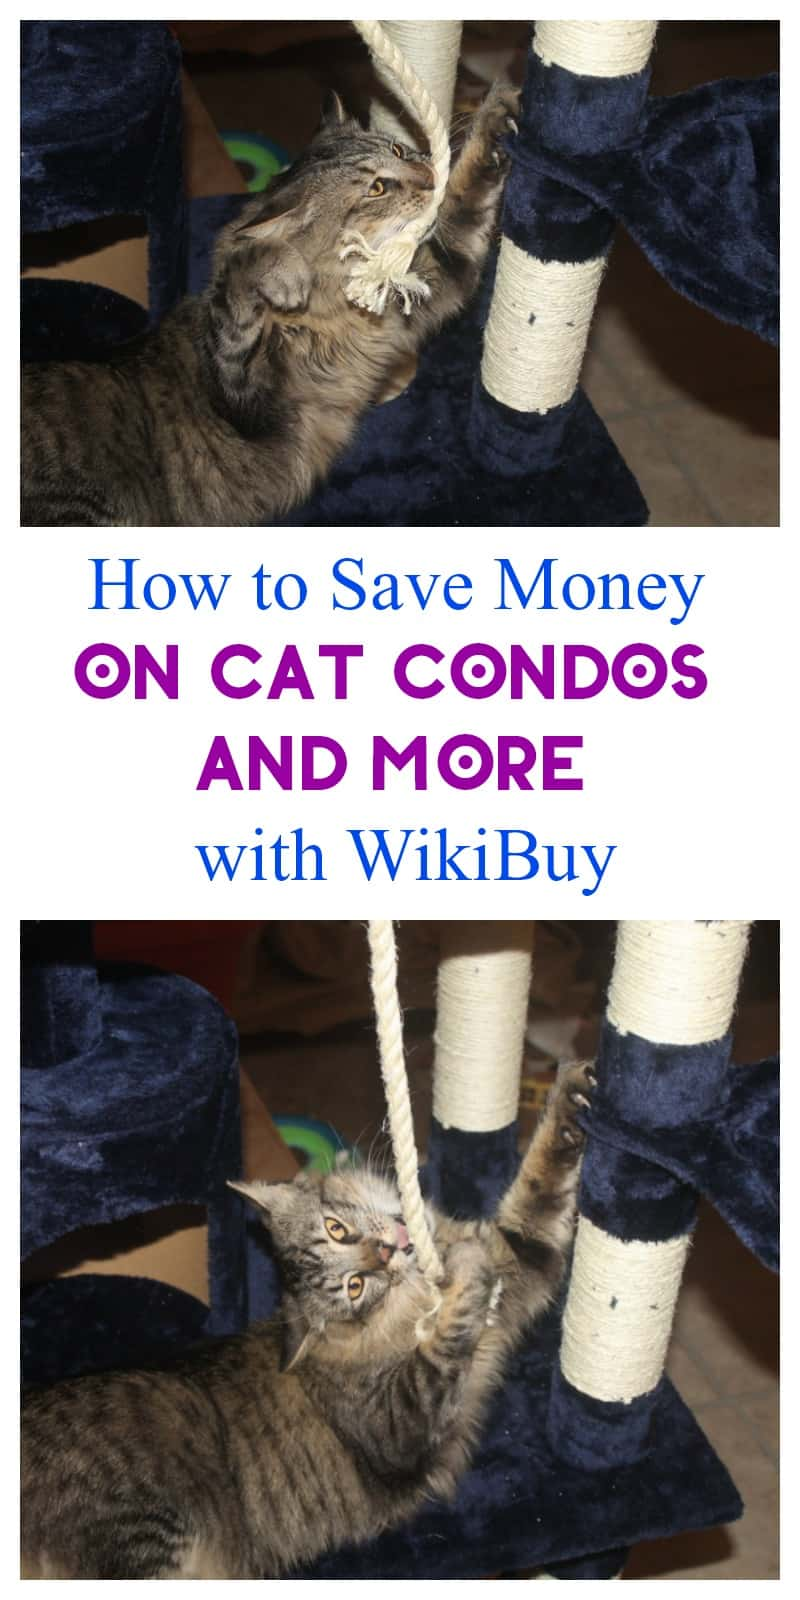 Want to make sure you're getting the best deal on everything from cat condos to curling irons? You'll love WikiBuy! Check out how I use it to save money!